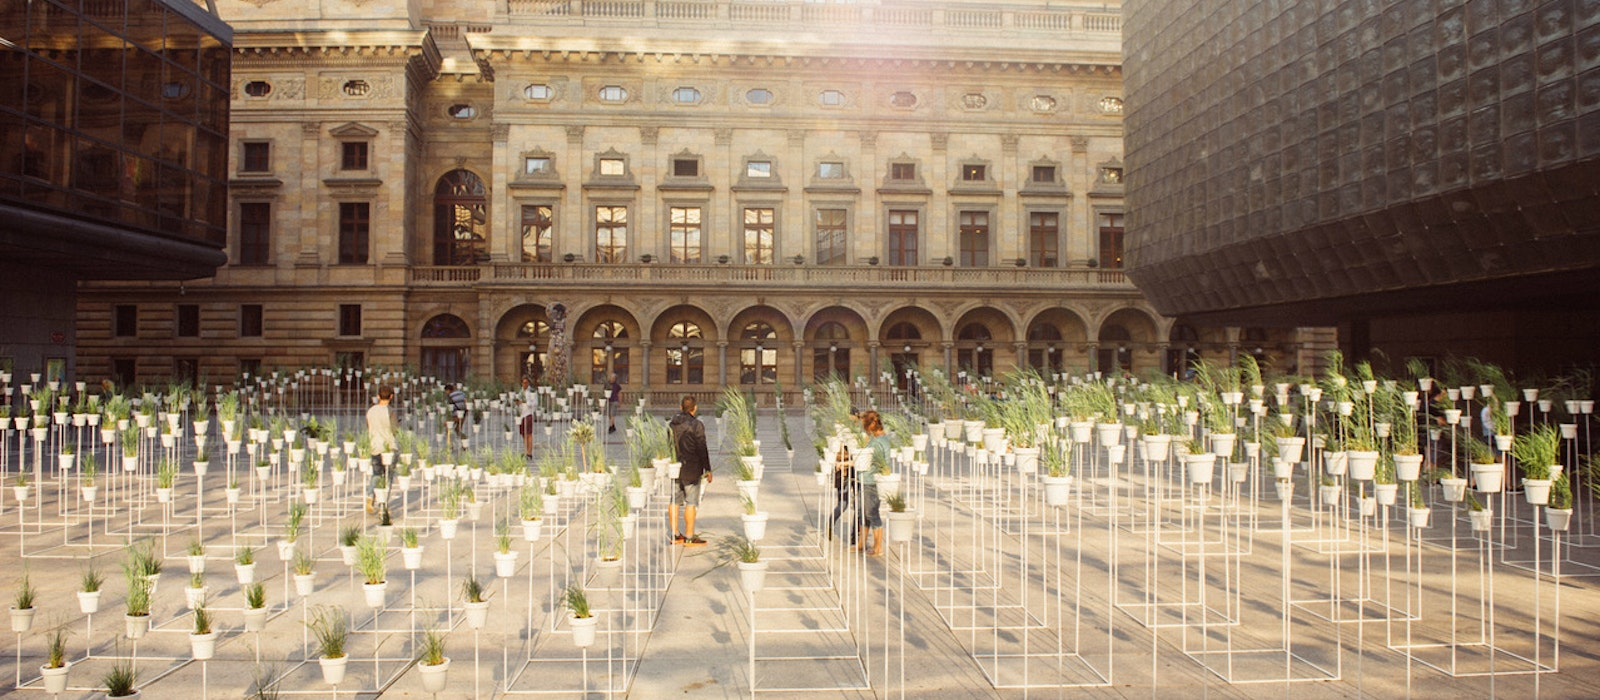 An urban botanical installationdesigned by the founders of Haenke lab